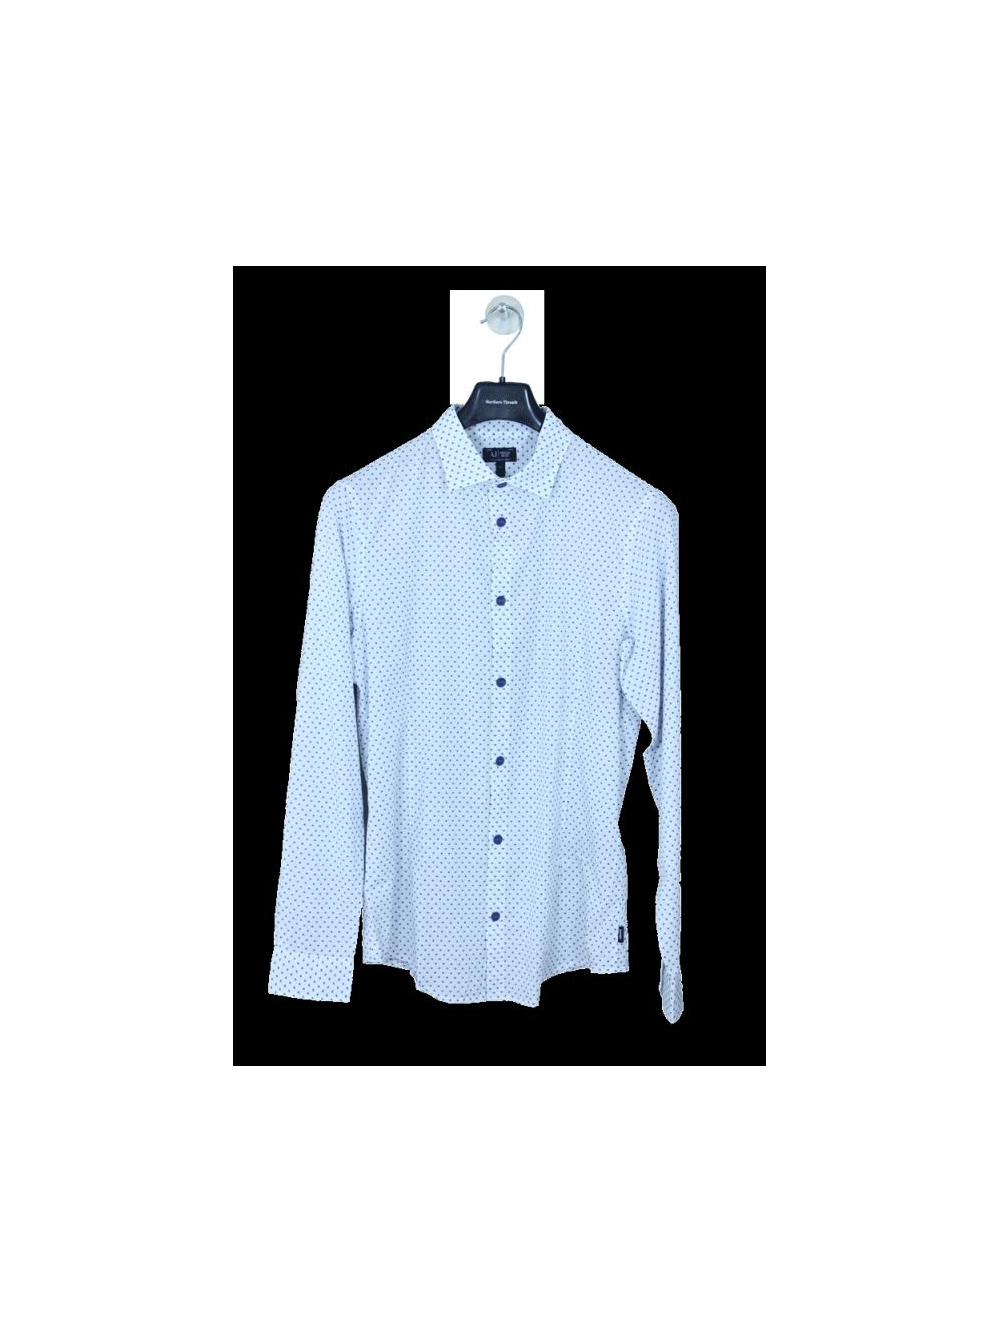 187d369f2 Armani Jeans Polka Dot Shirt in White/Navy - Northern Threads